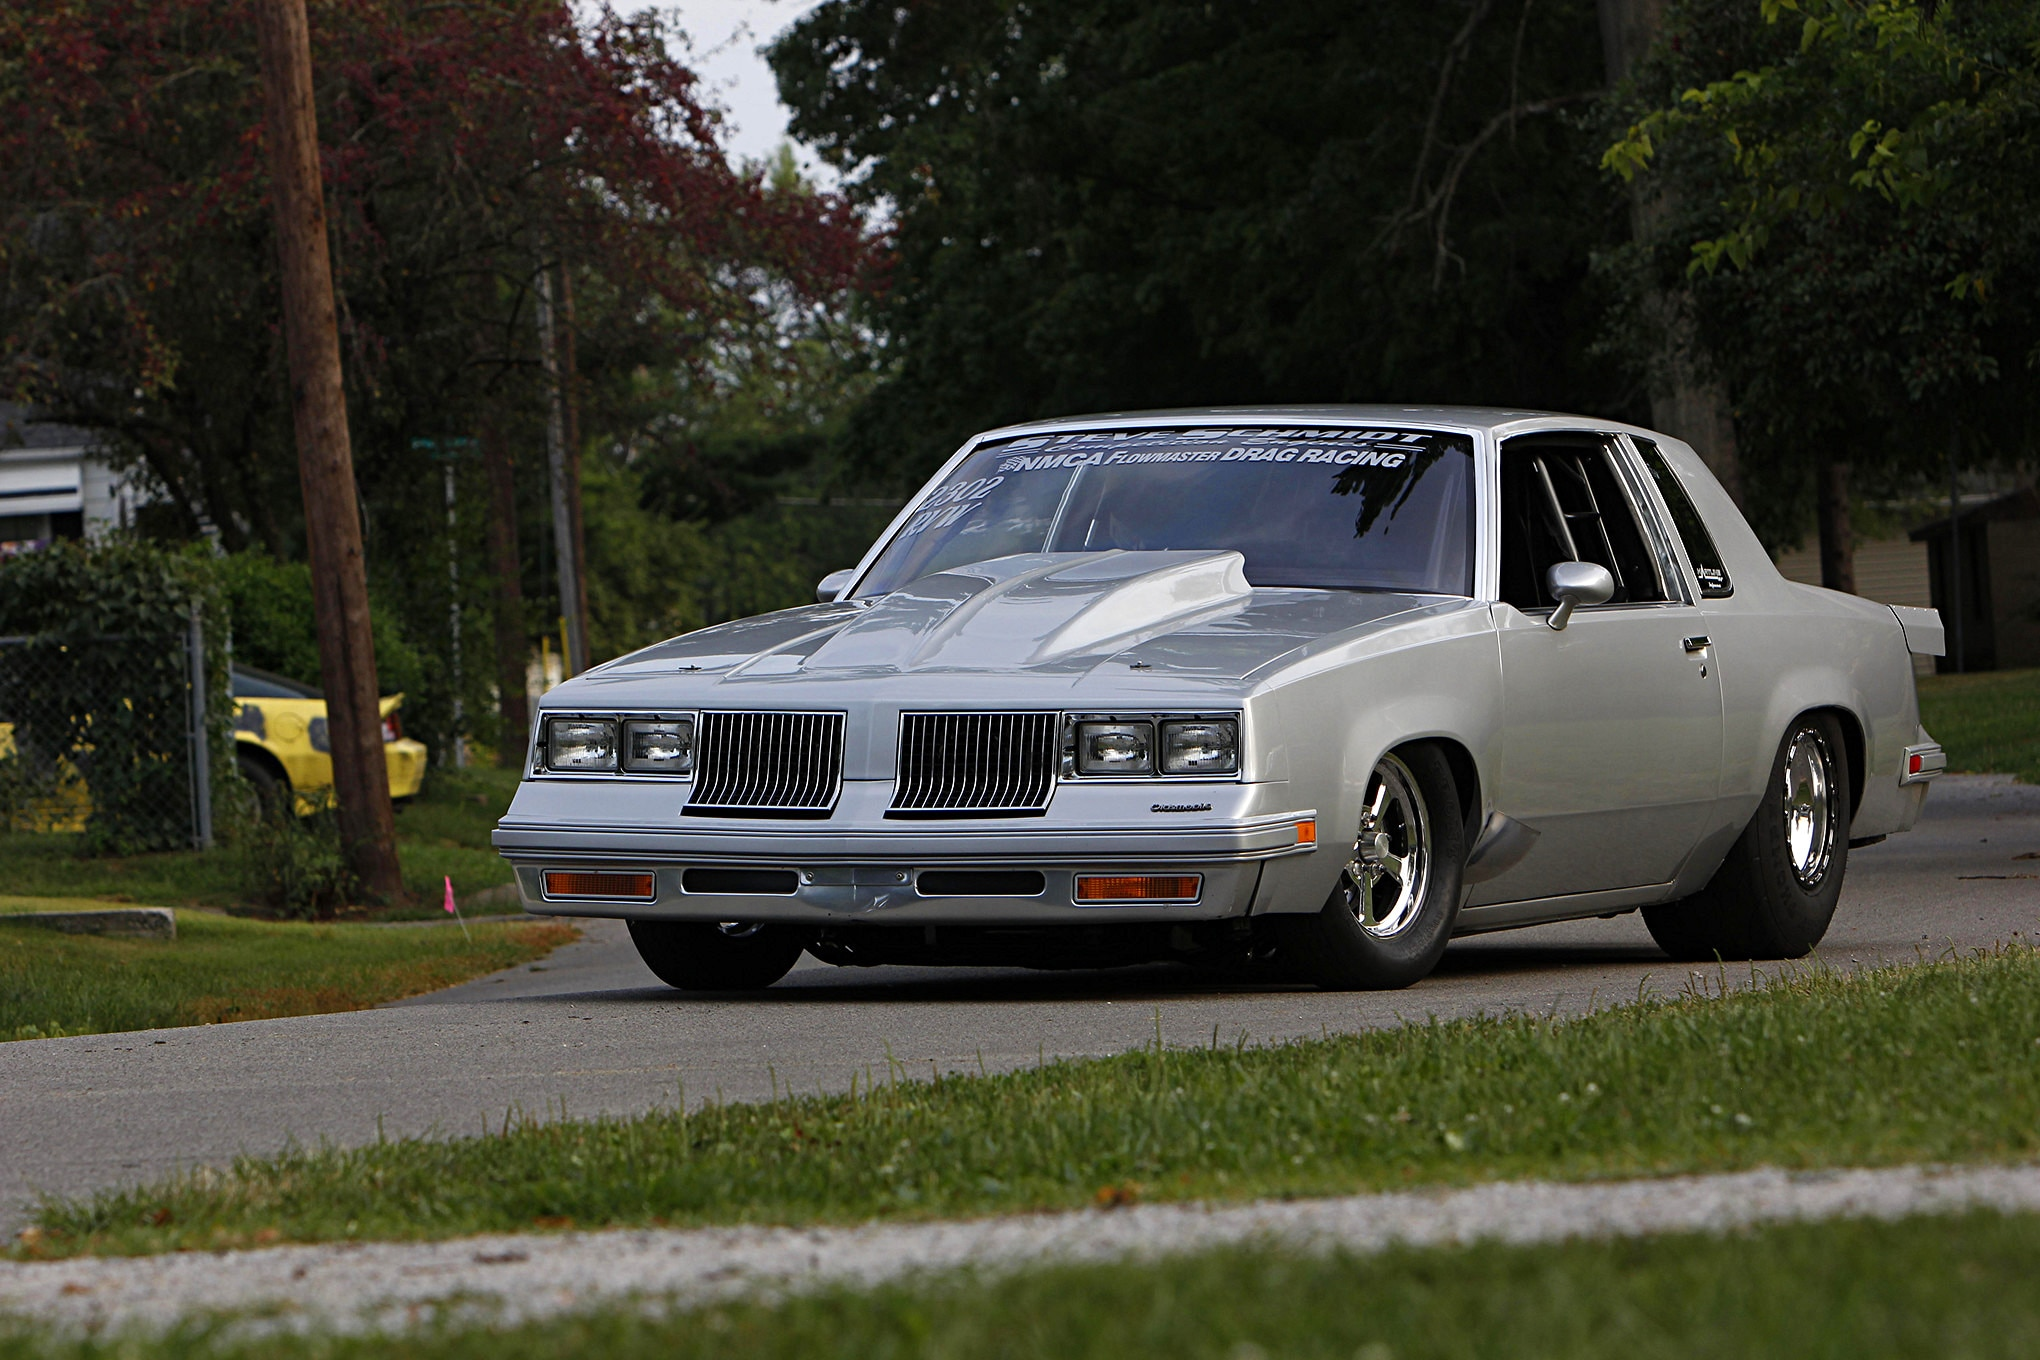 2016 car craft project car 1982 oldsmobile jason rueckert